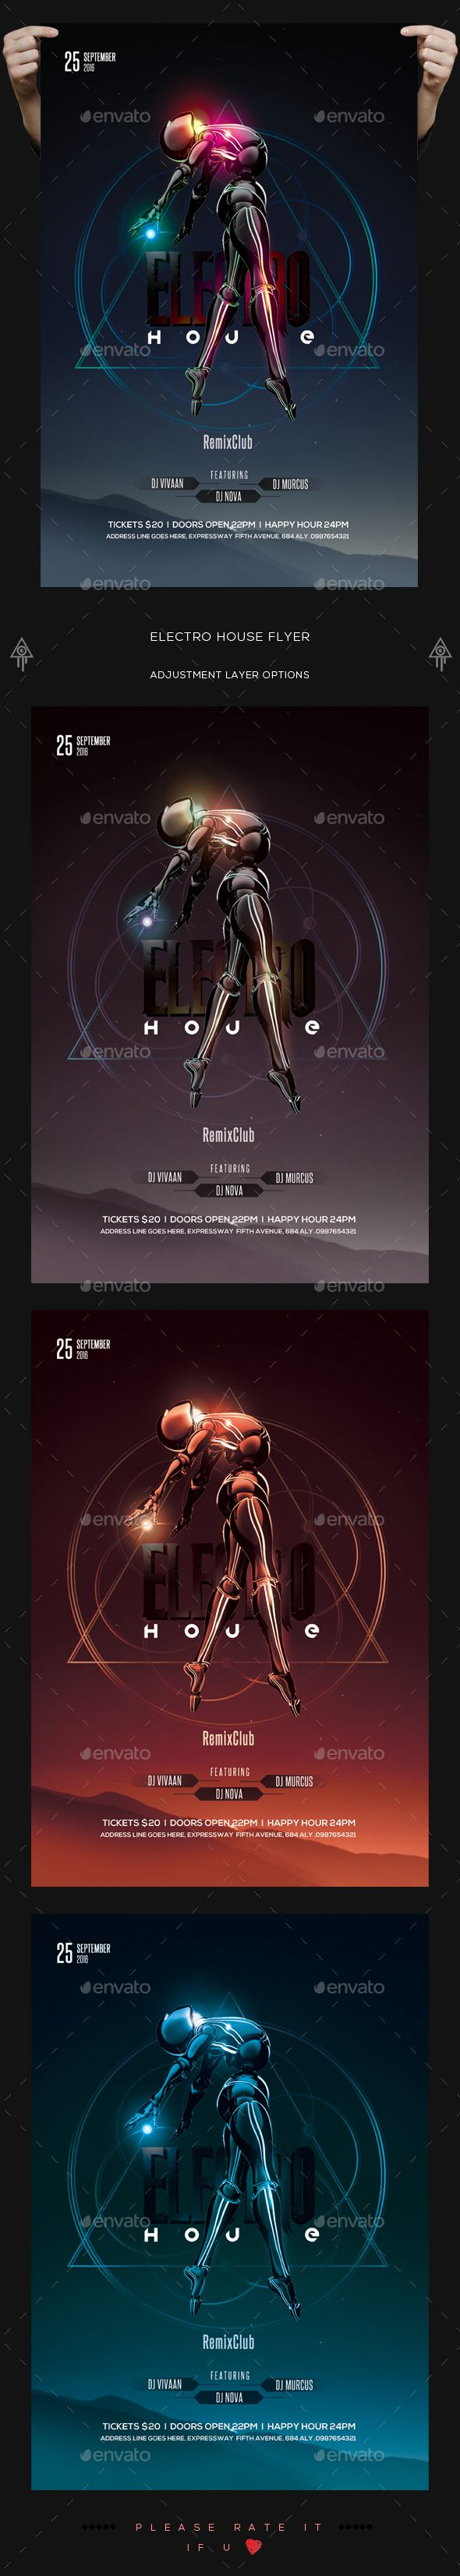 Electro House Flyer — PSD Template #inspiration #grunge #creative • Download ➝ https://graphicriver.net/item/electro-house-flyer/18619288?ref=pxcr